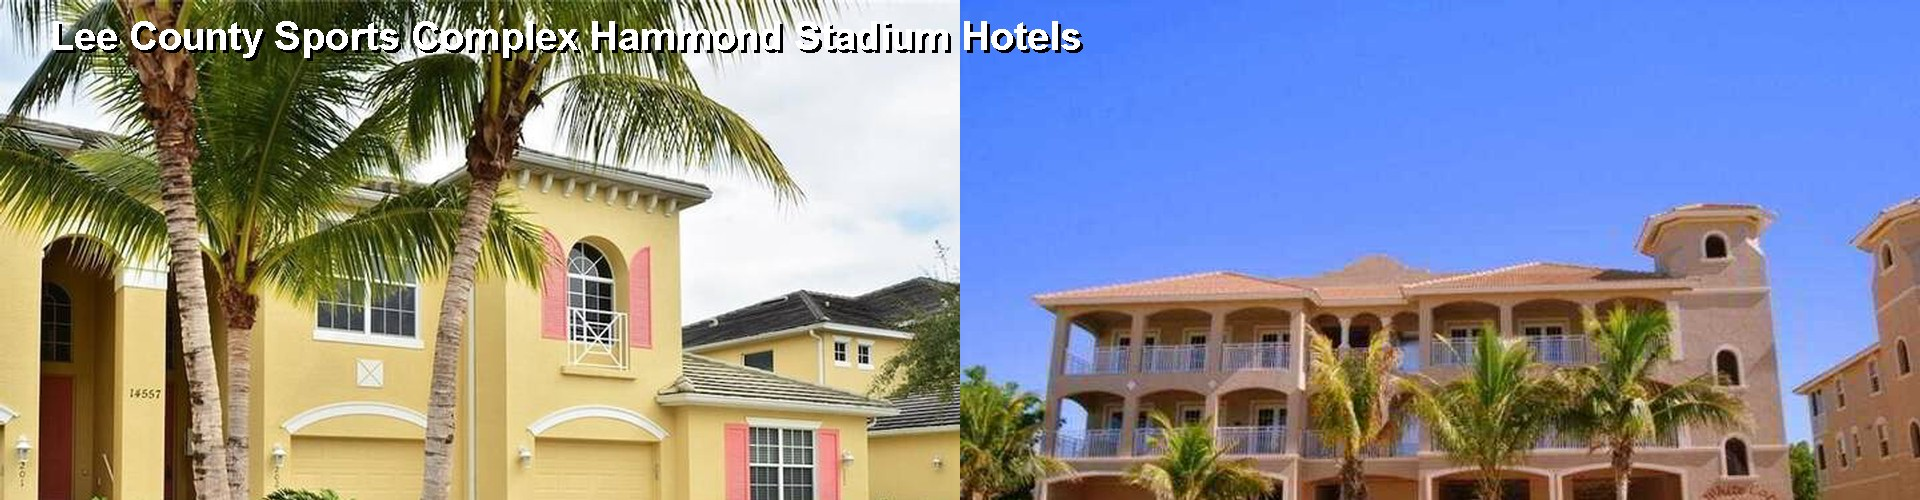 5 Best Hotels near Lee County Sports Complex Hammond Stadium